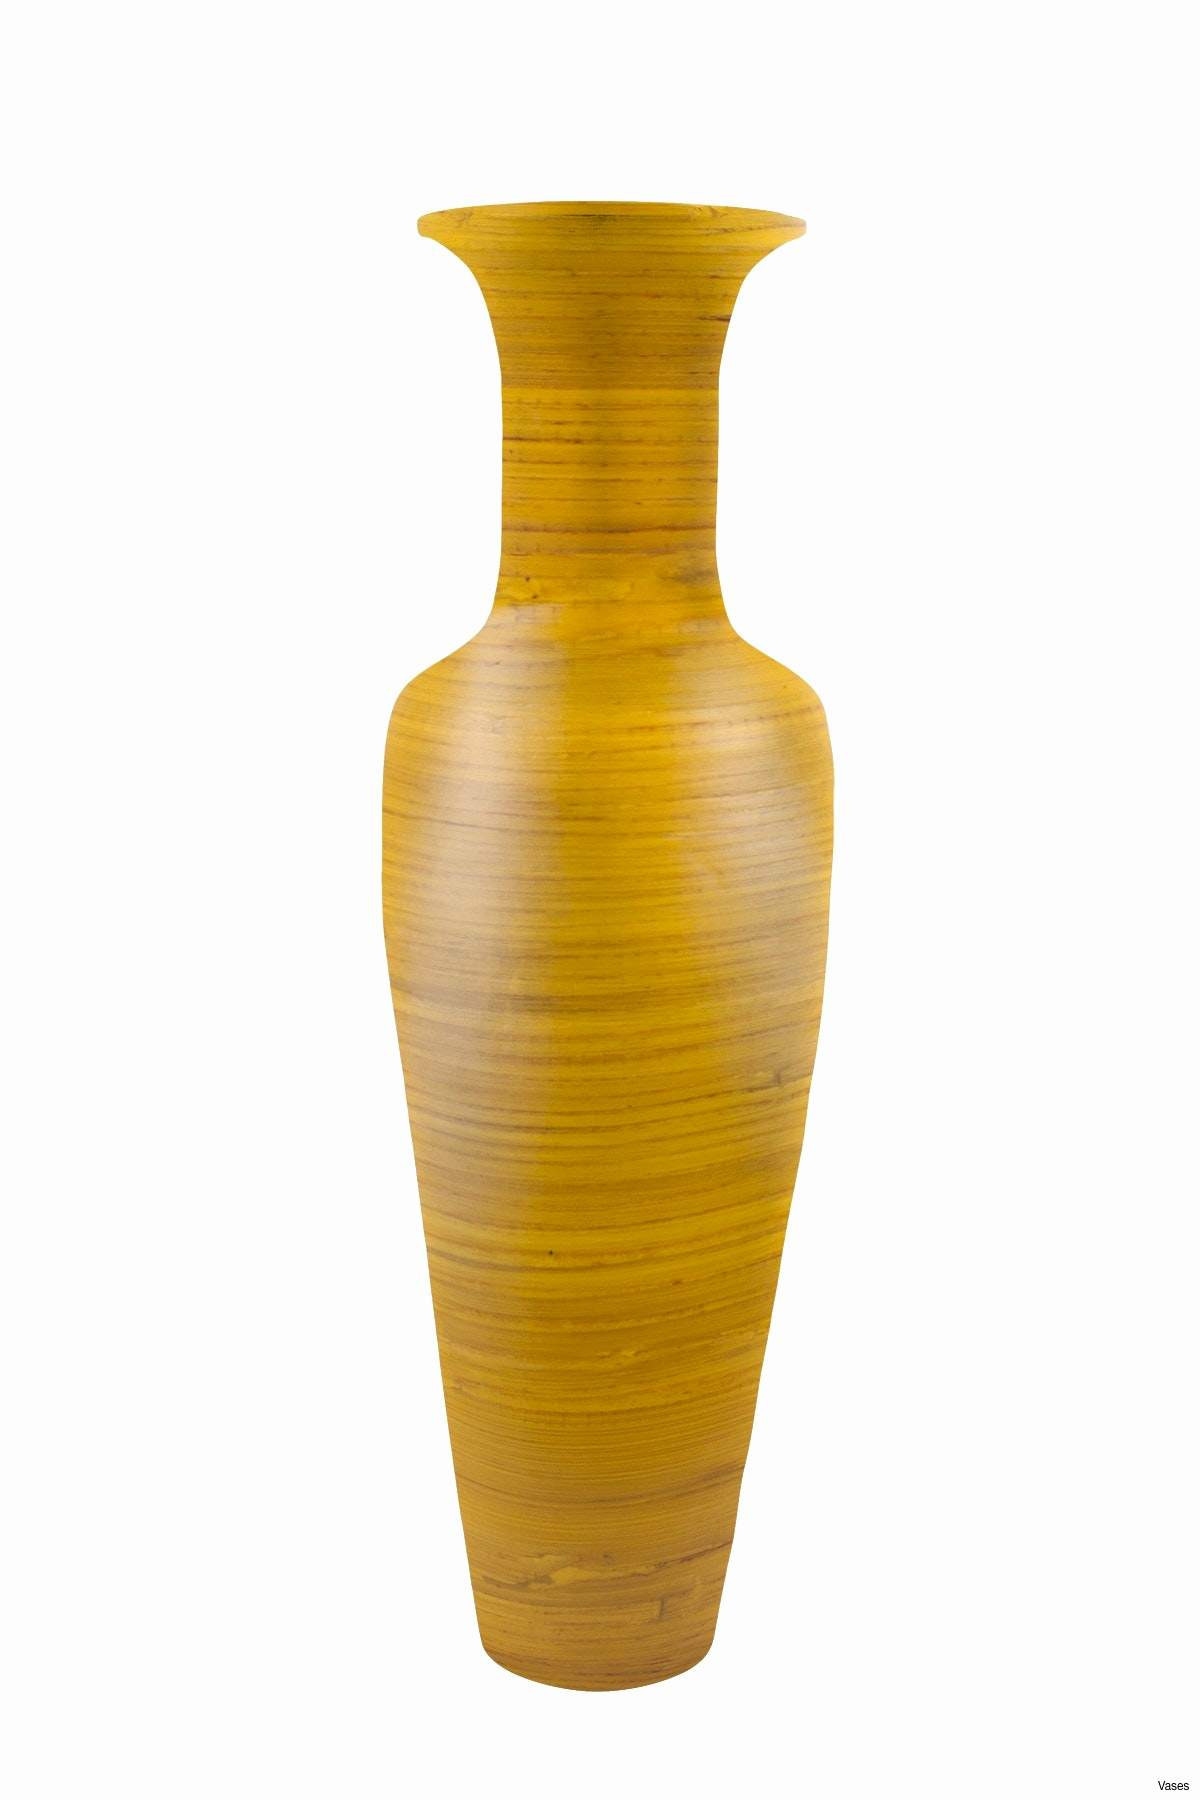 16 Stylish 3 Gallon Glass Vase 2021 free download 3 gallon glass vase of vases set of 3 collection 3 vases centerpieces design vases with vases set of 3 images area floor rugs new joaquin gray vases set 3 2h pottery